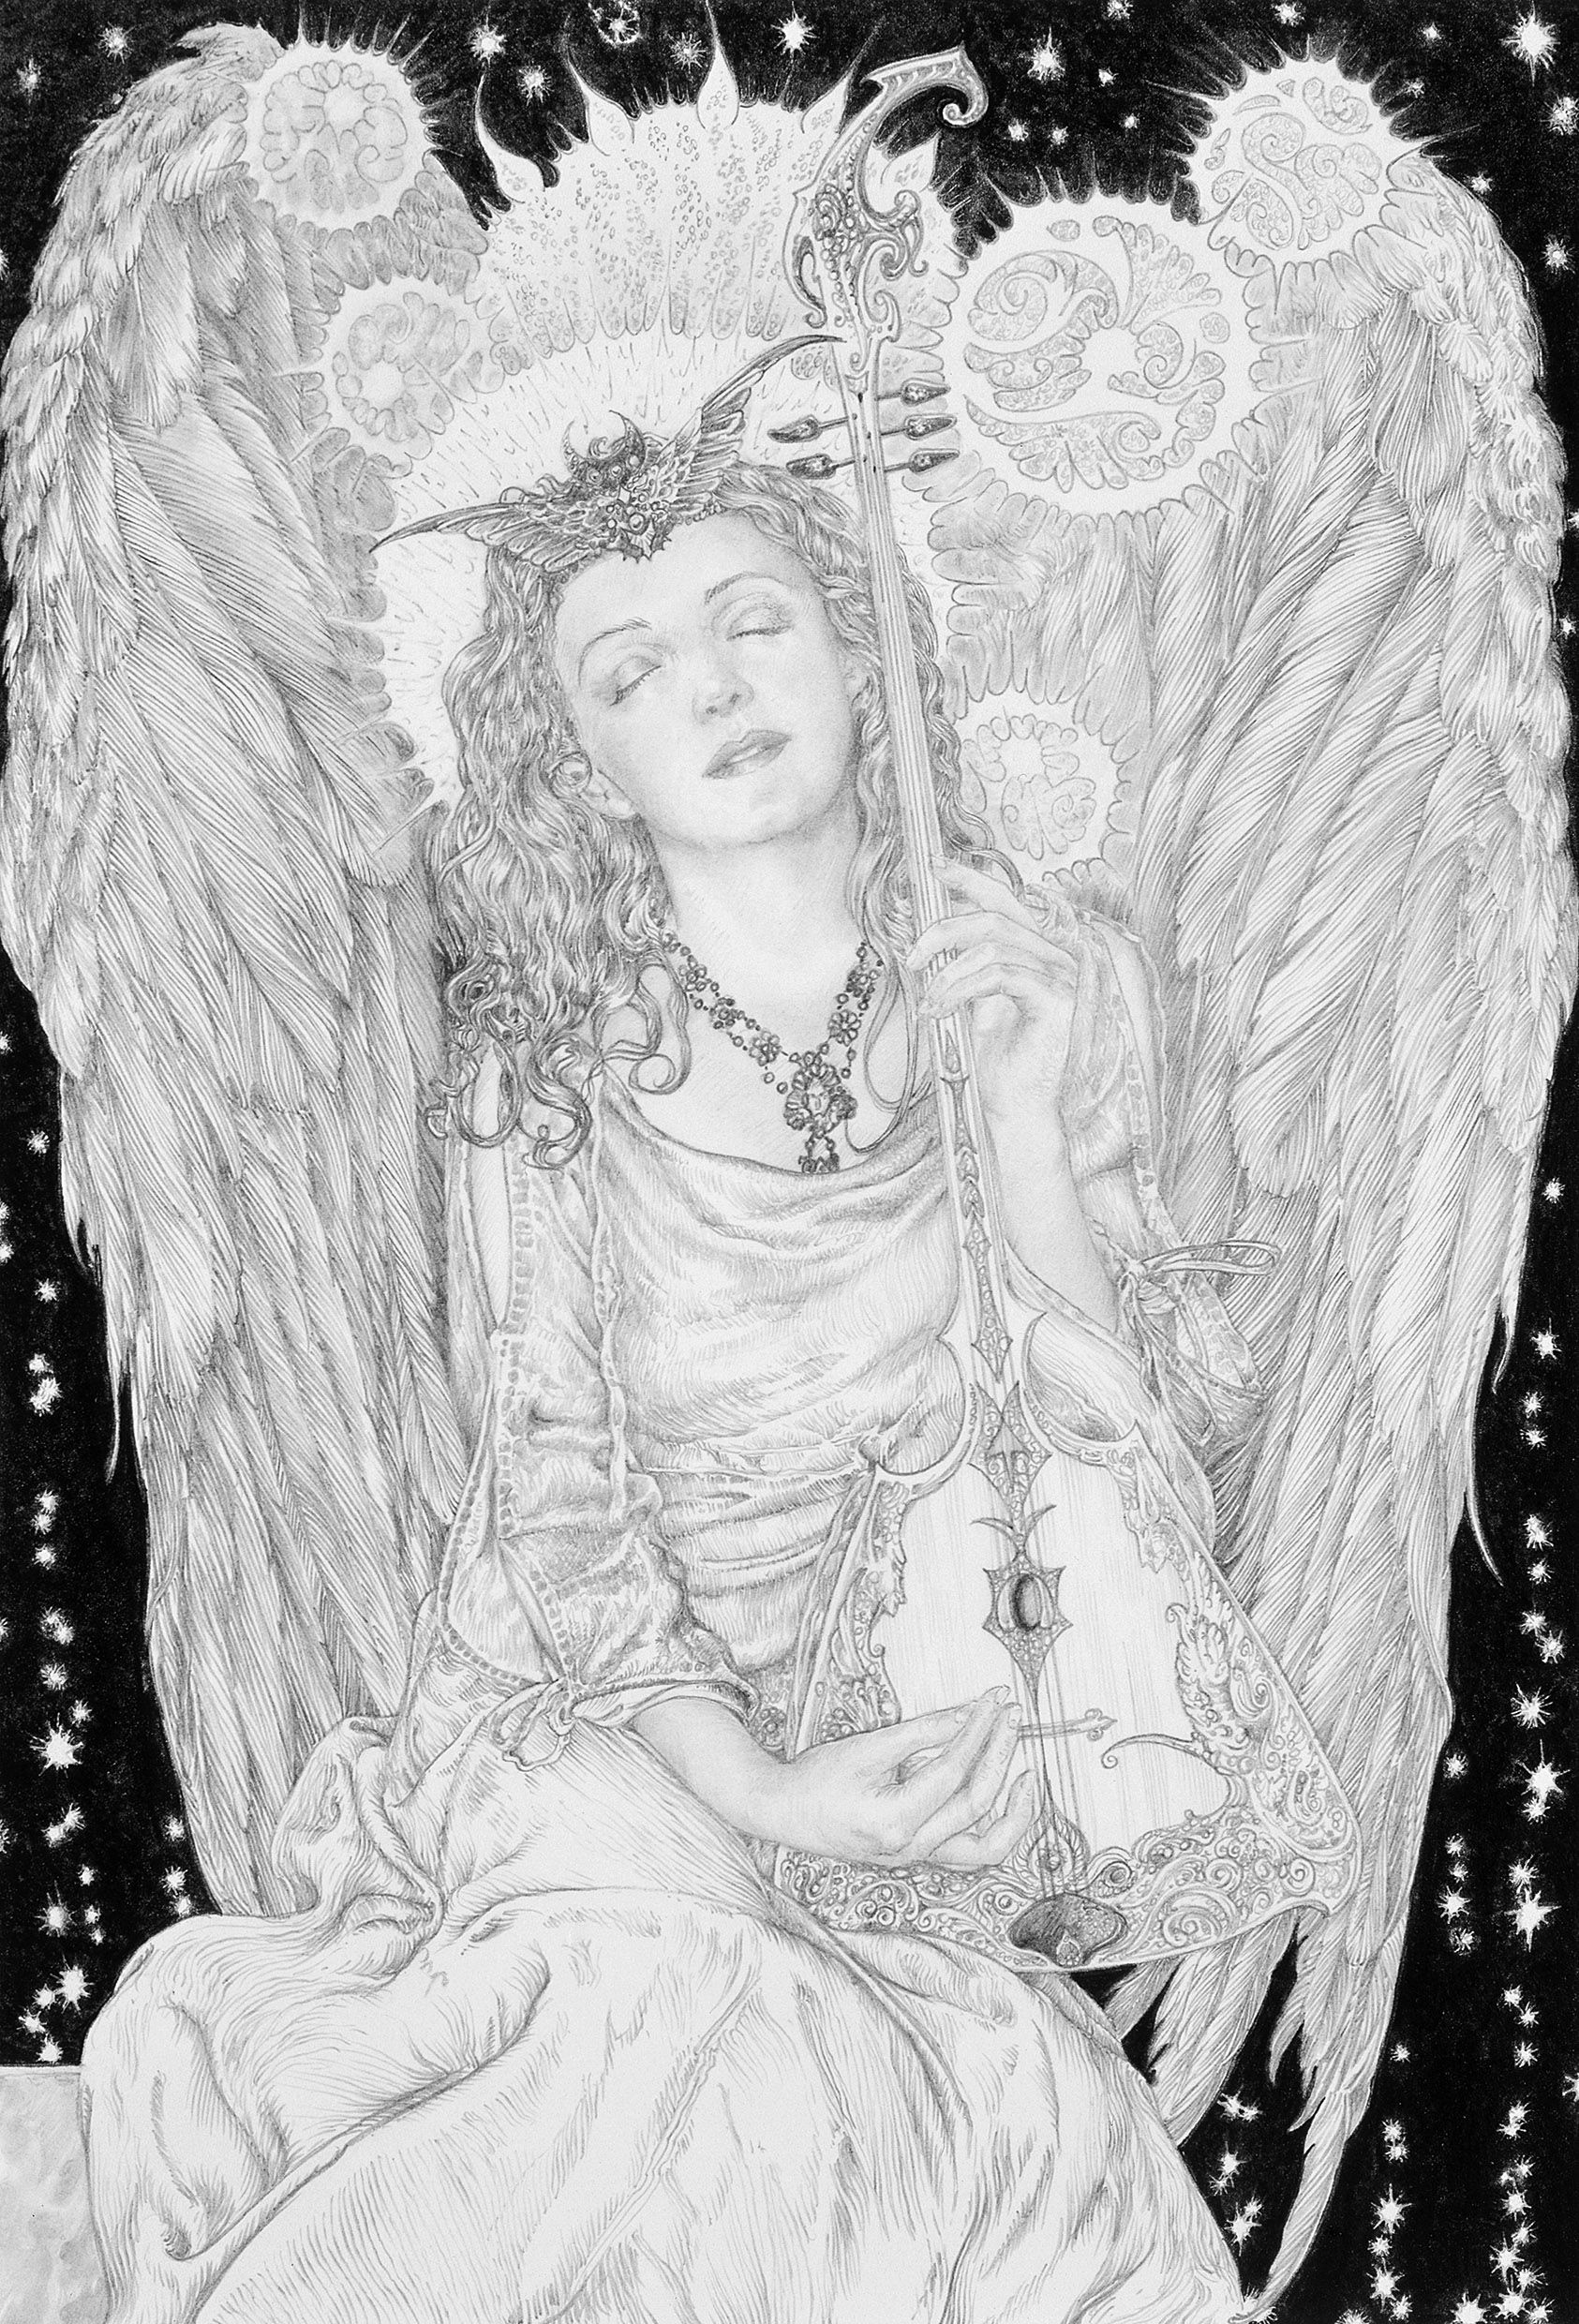 Angel by Ed Org.  Ed Org will be having a solo show at Obsidian Art Gallery from 15 Feb - 17 March 2013.  http://www.obsidianart.co.uk